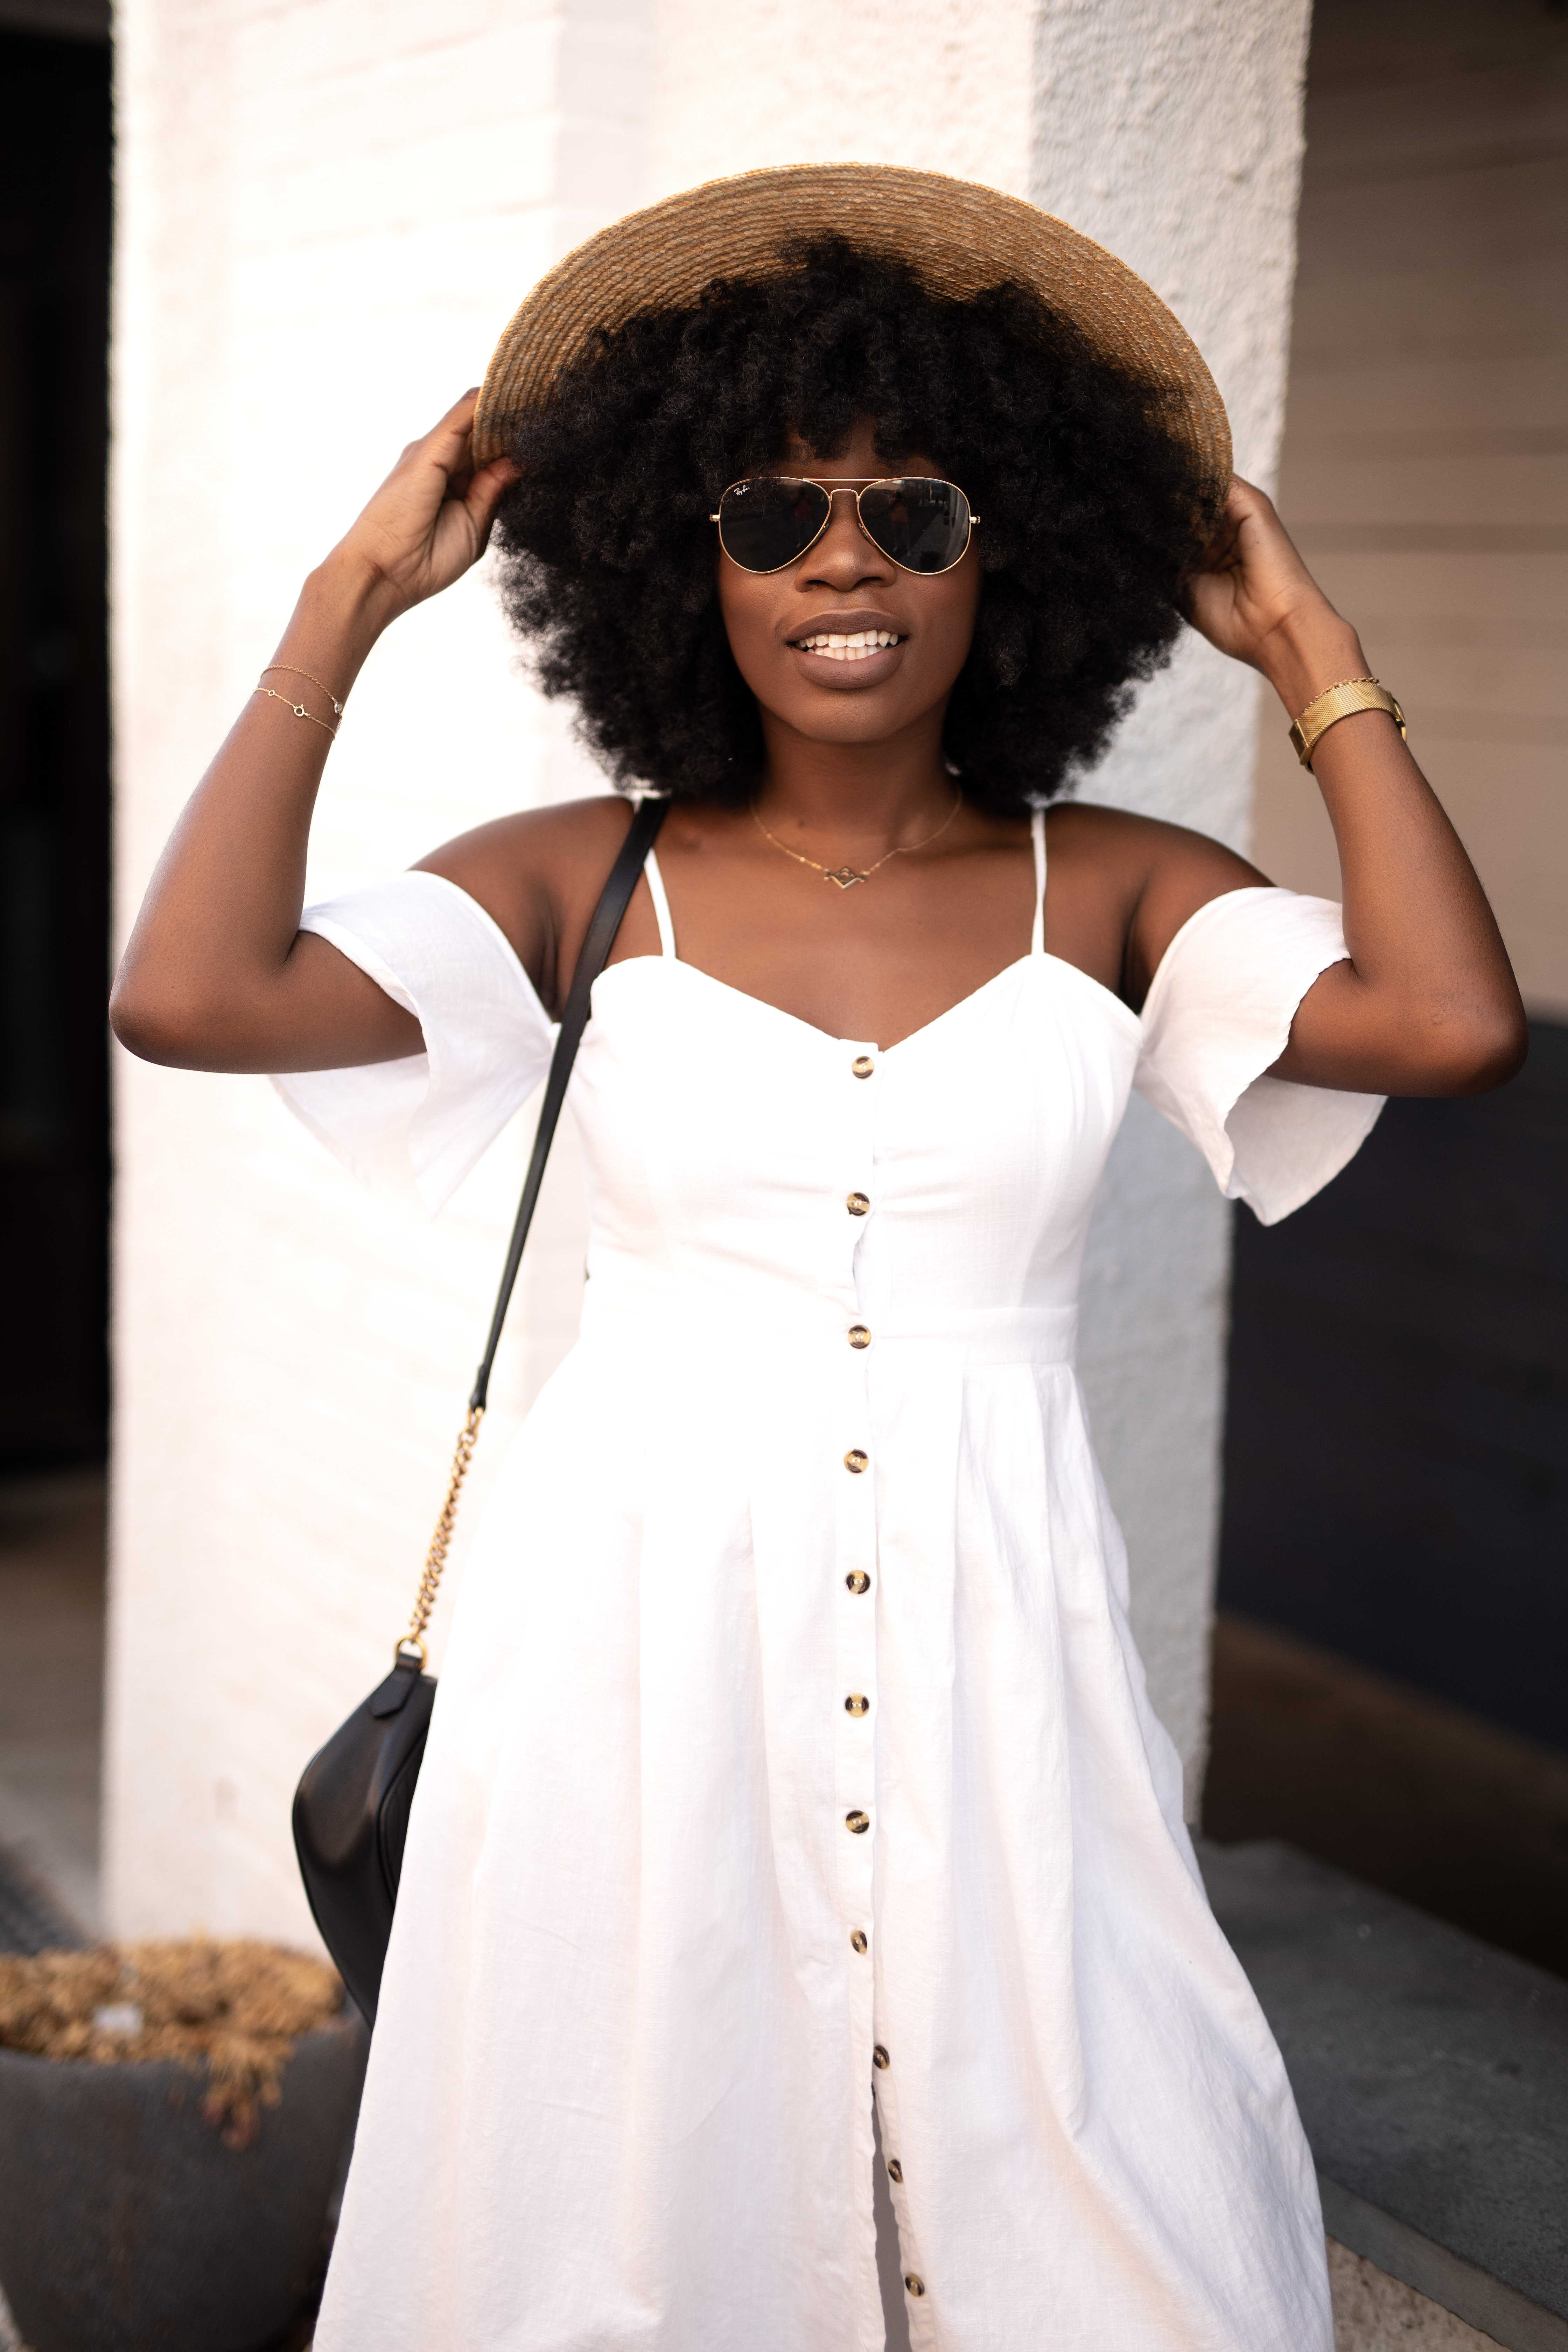 I ve gotten a few questions about sun hat recommendations for us natural  girls with a lot of hair. We all know that it s a struggle trying to find  hats in ... 562f0a74cd2